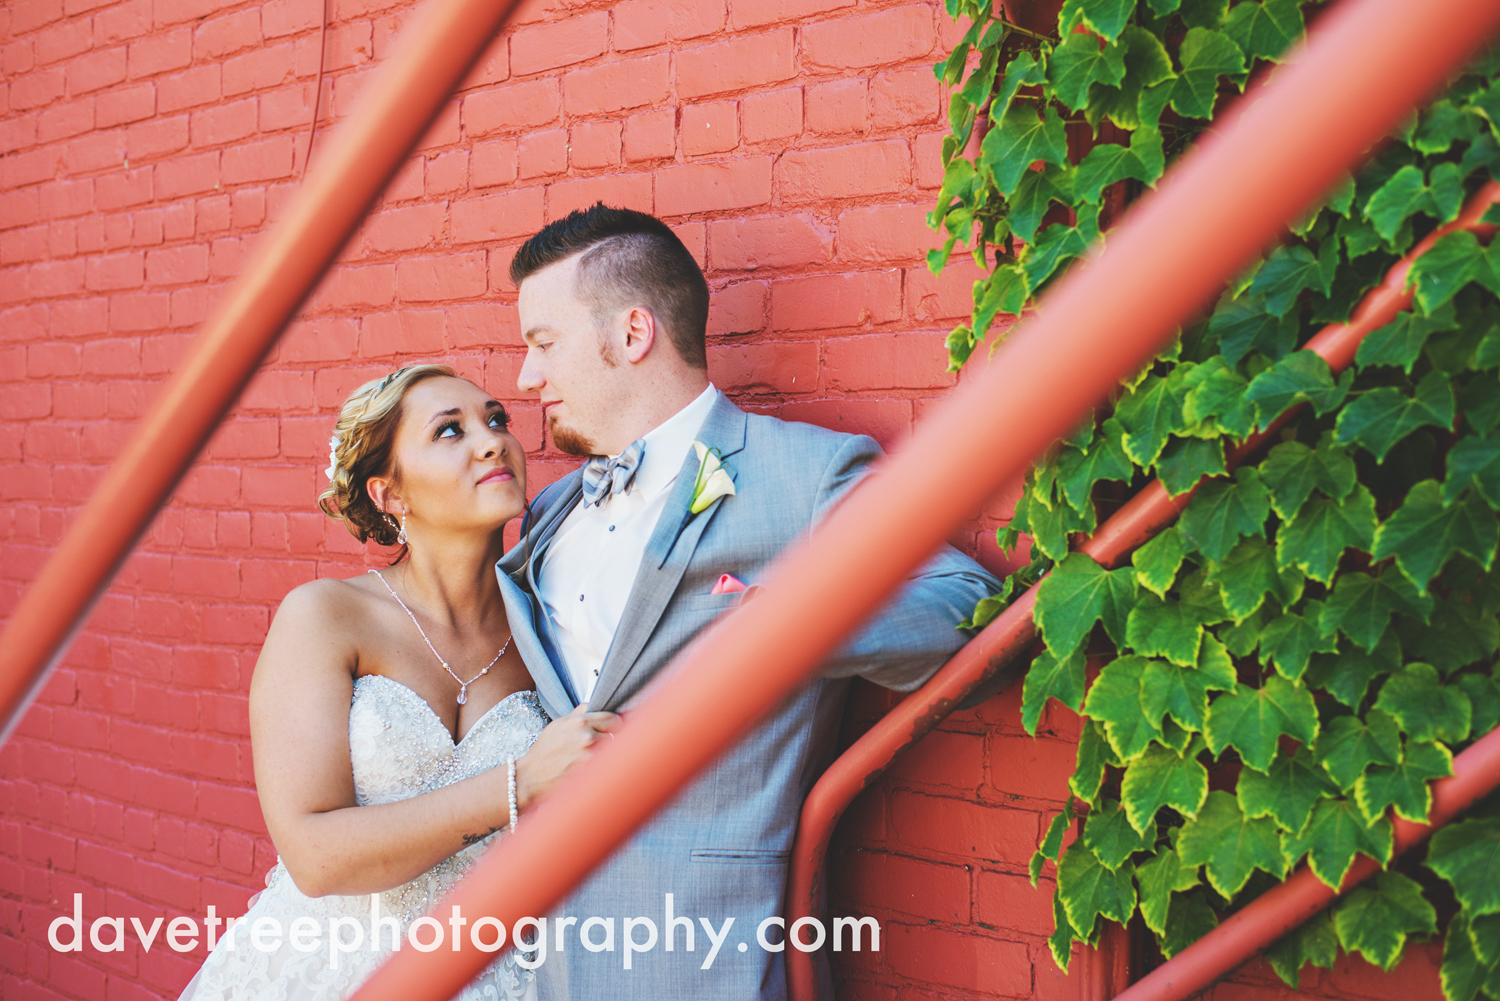 veranda_wedding_photographer_st_joseph_wedding_31.jpg